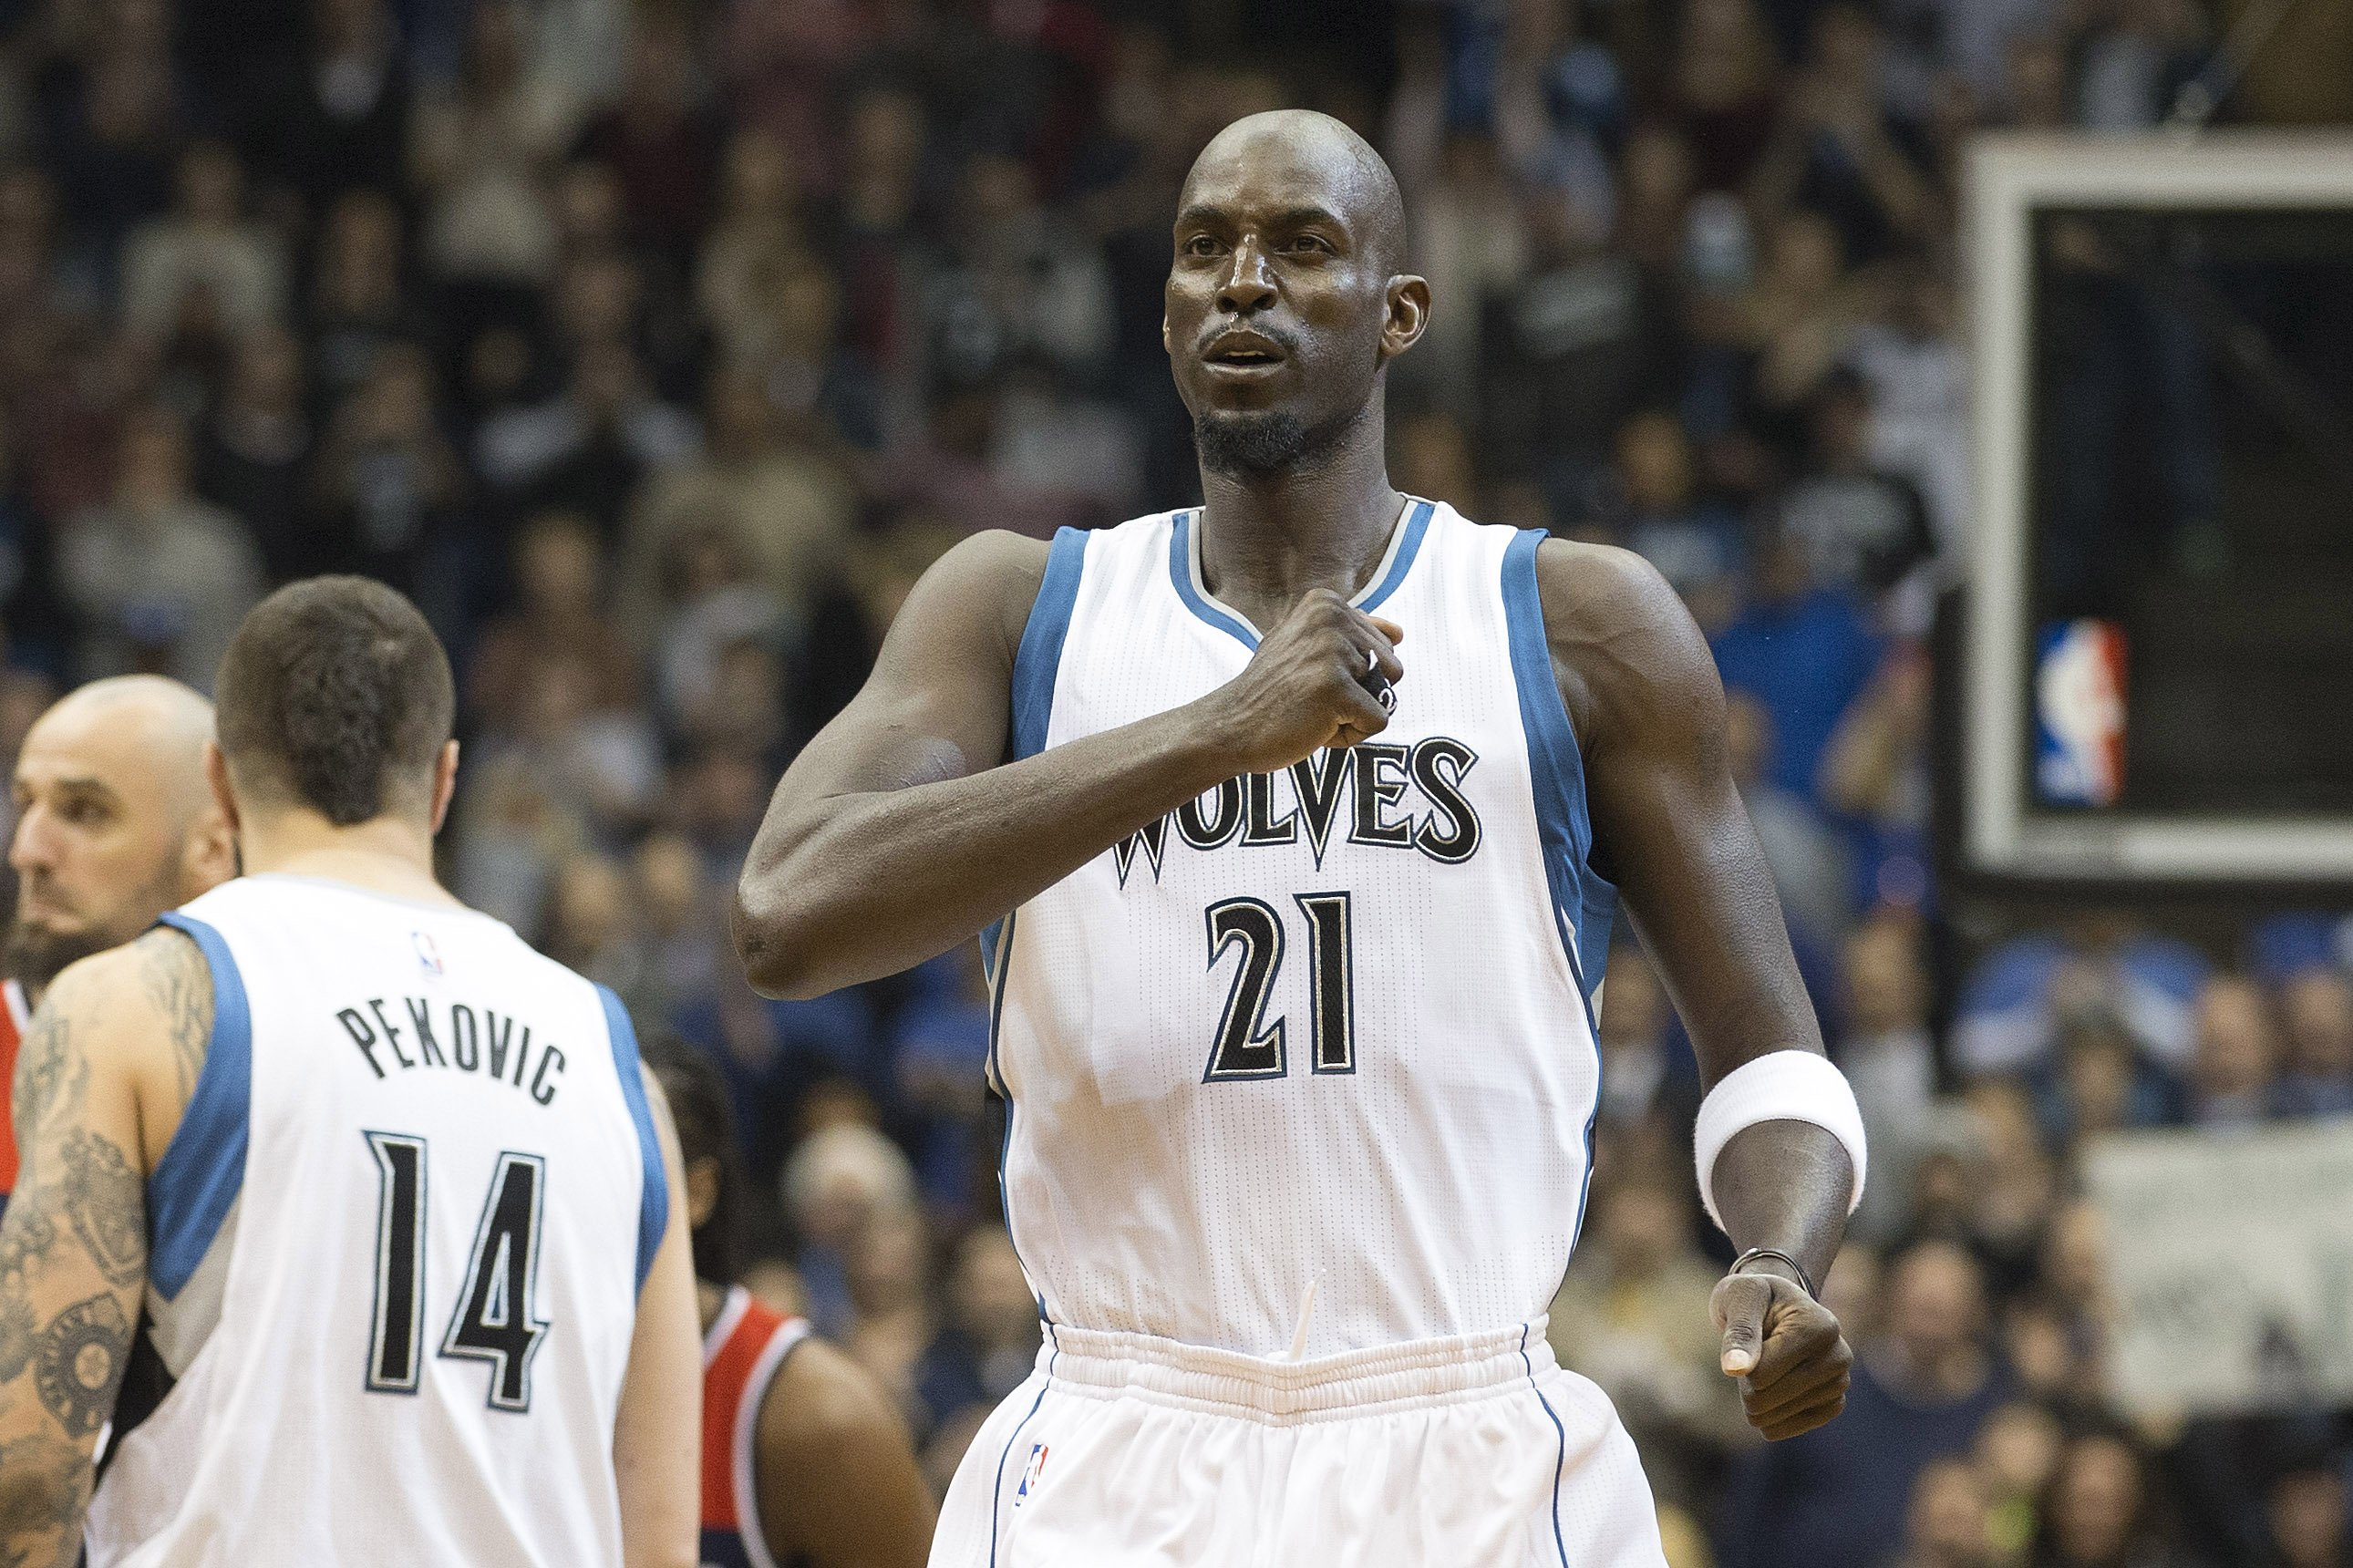 Minnesota Timberwolves forward Kevin Garnett (21) pounds his chest before a game against the Washington Wizards at Target Center on feb. 25, 2015.